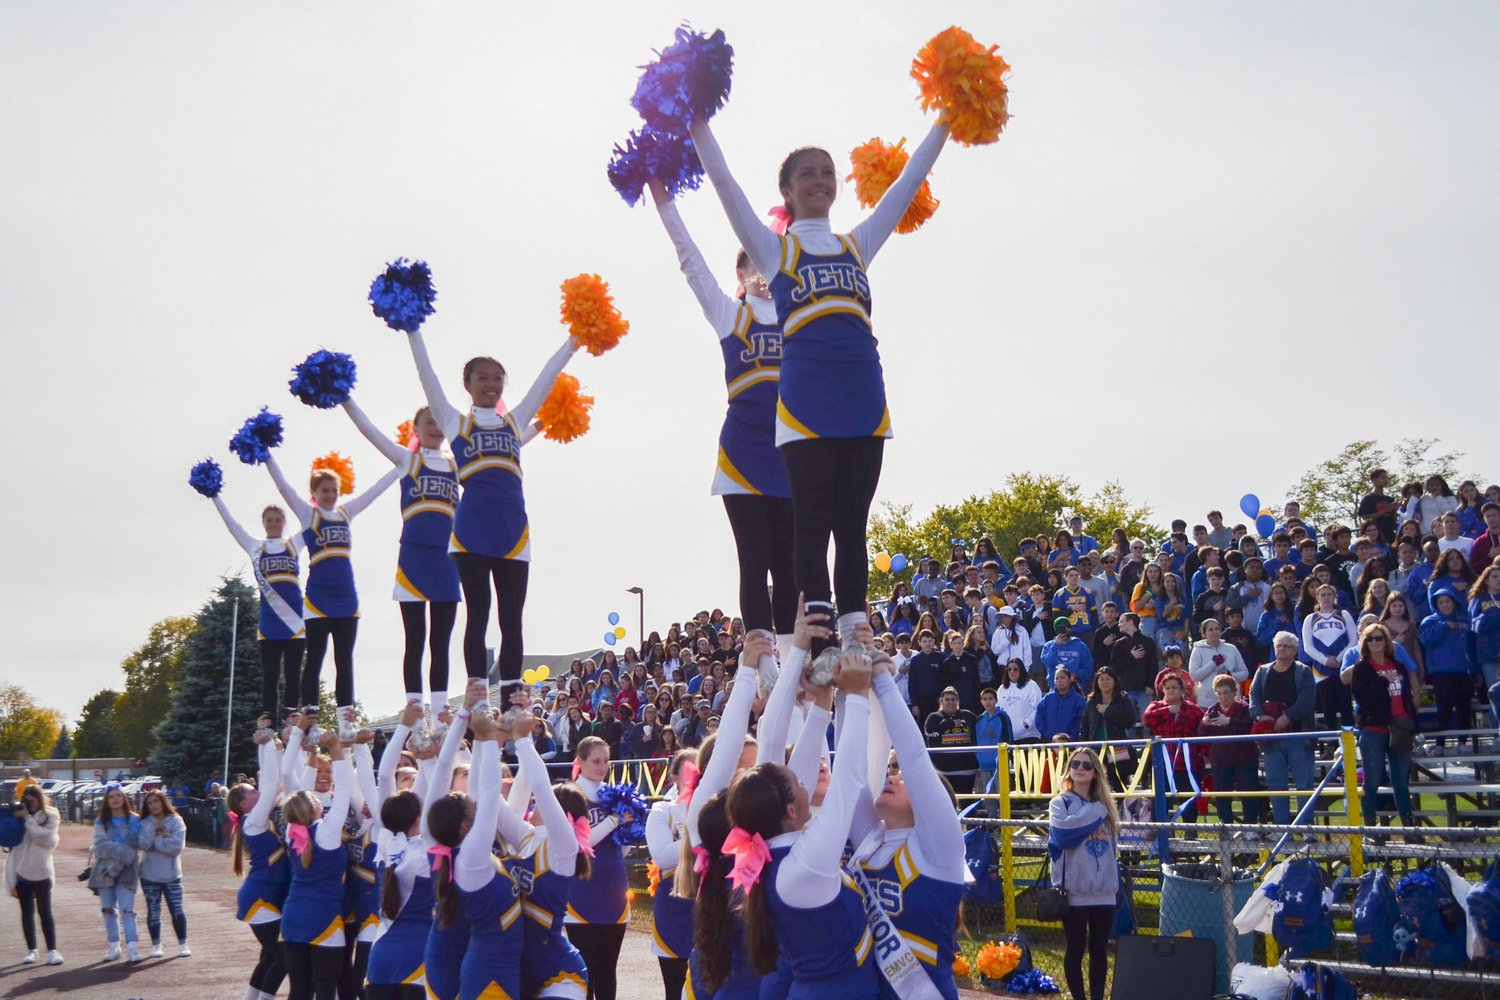 East Meadow's cheerleading squad riled up the crowd during halftime.